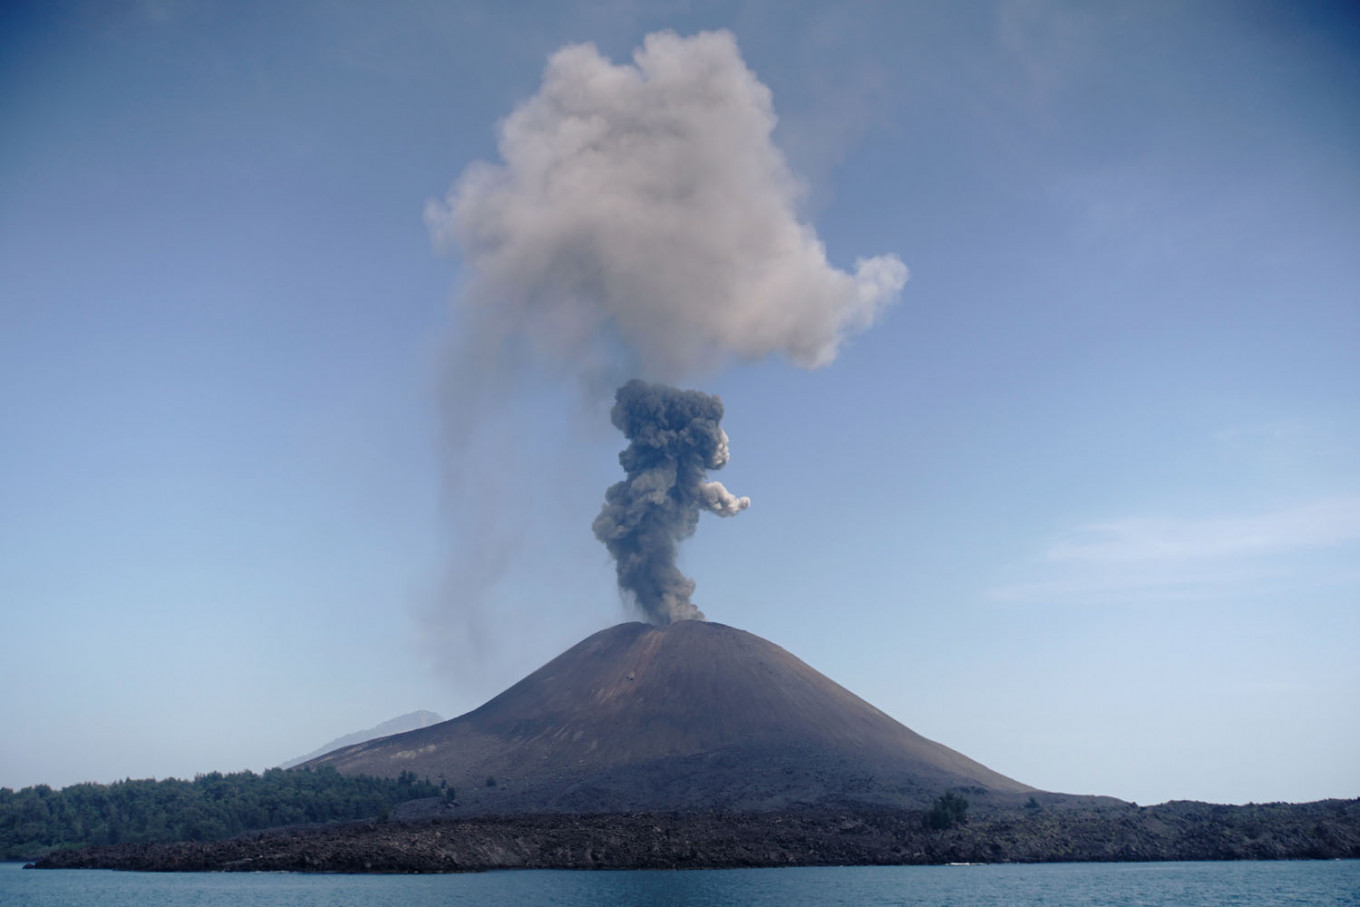 Warning sounded as Mt. Anak Krakatau rumbles